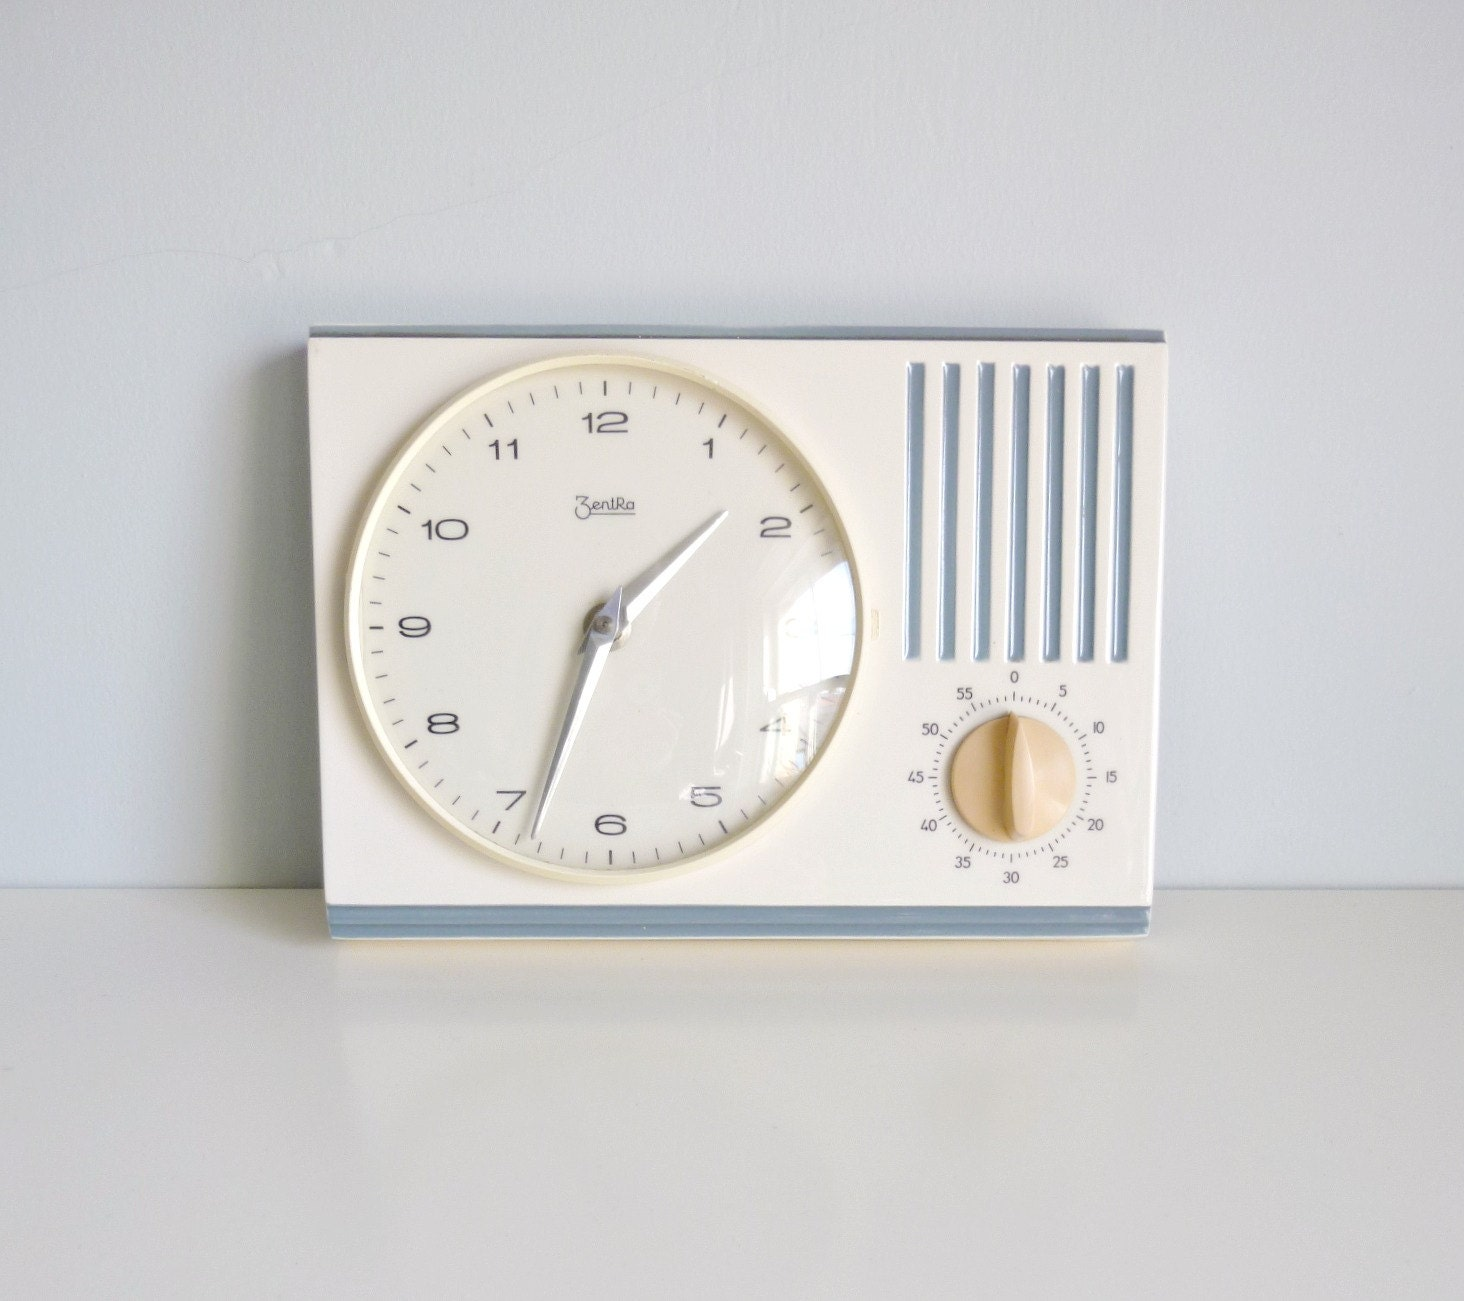 Mid Century 1960s Kitchen Wall Clock & Timer - Off-white / Blue - ZentRa, Germany - Mad Men, Home, Kitchen, Cooking, Chef, Eames Panton Era - mungoandmidge